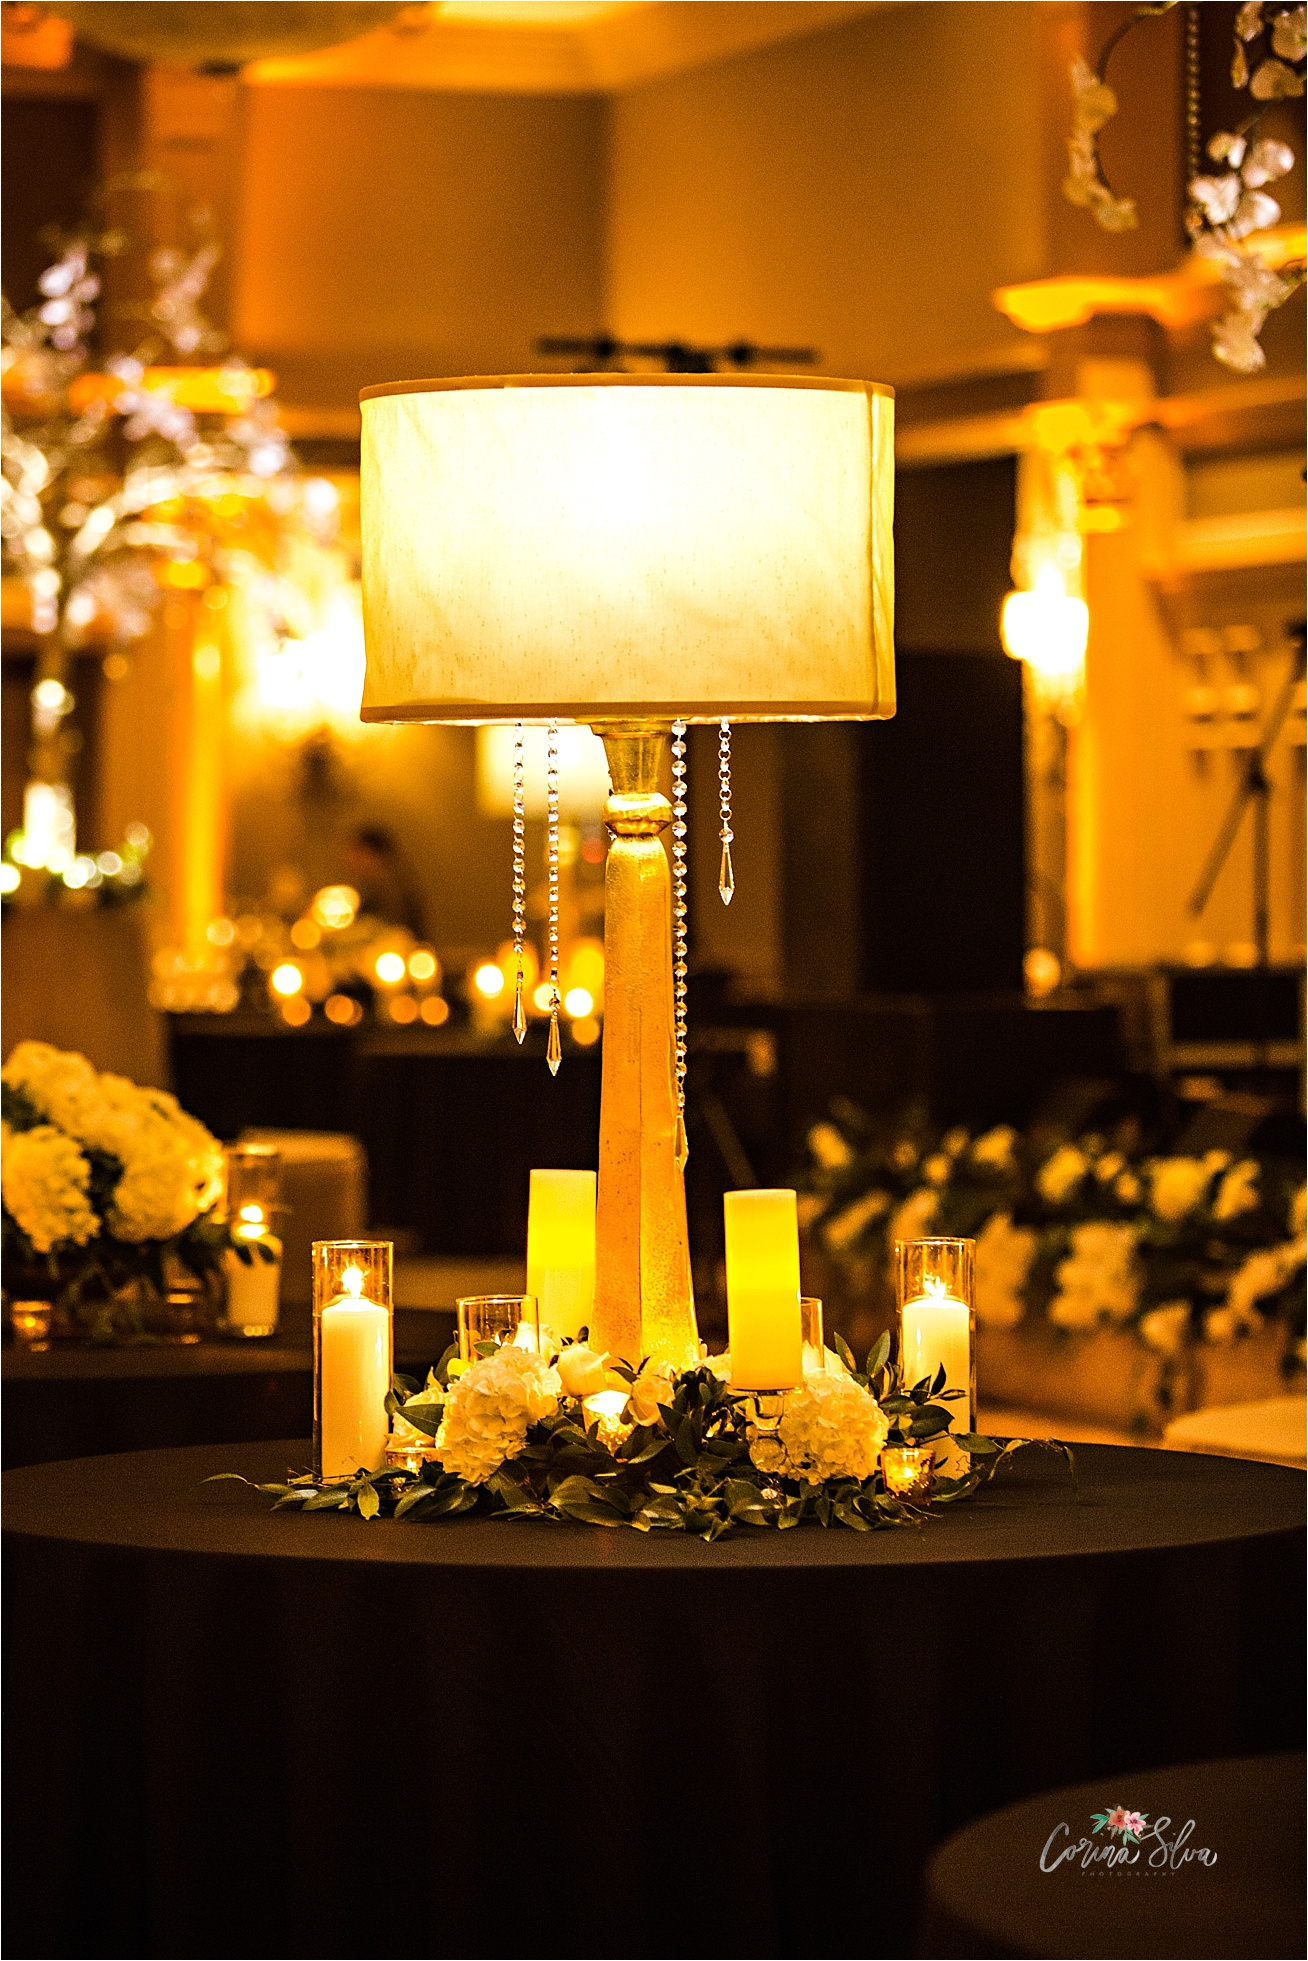 RSG-Event-and-Designs-luxury-wedding-decor-photos, Corina-Silva-Studios_0035.jpg